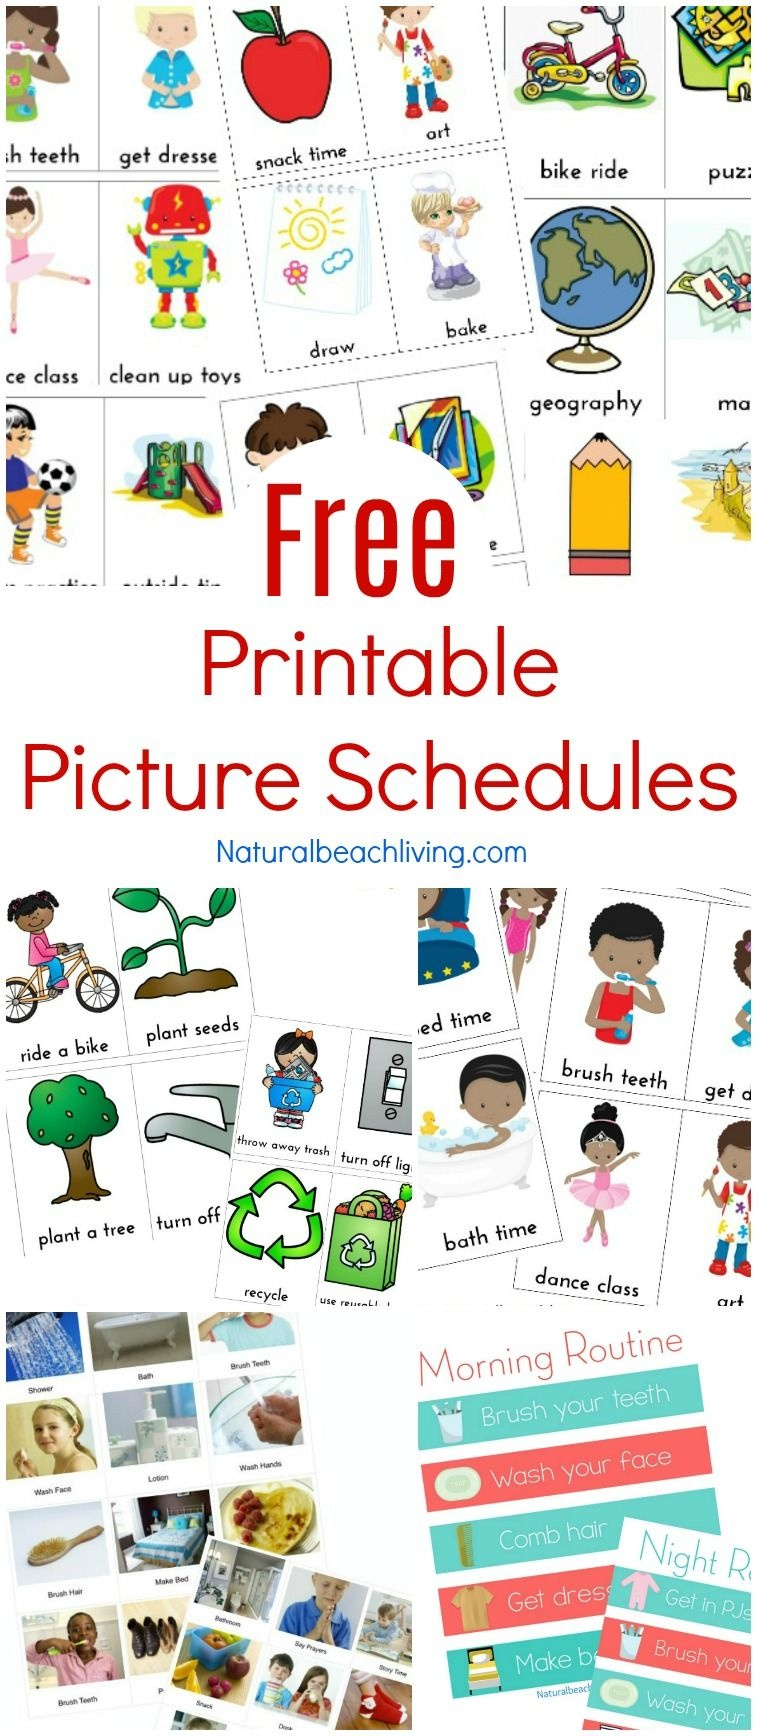 Free Printable Picture Schedule Cards - Visual Schedule Printables - Autism Picture Cards Free Printable